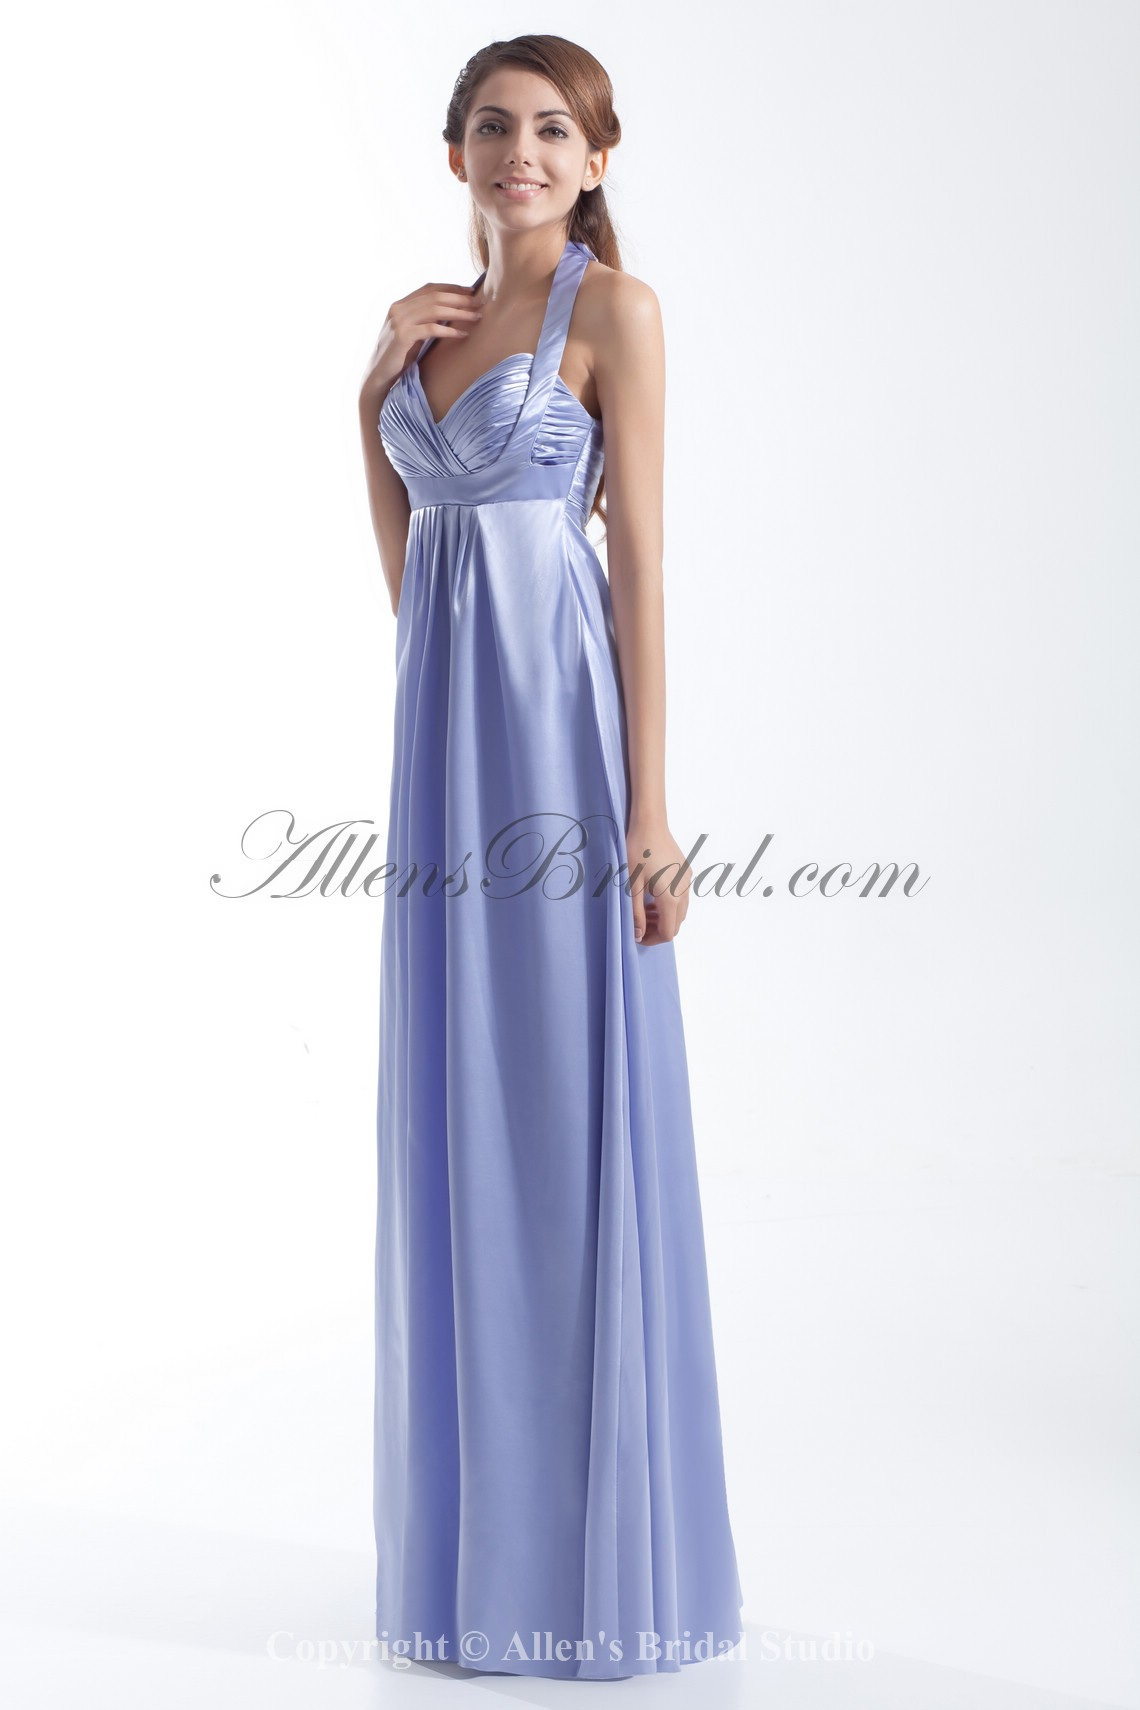 /662-5302/satin-halter-neckline-floor-length-column-prom-dress.jpg